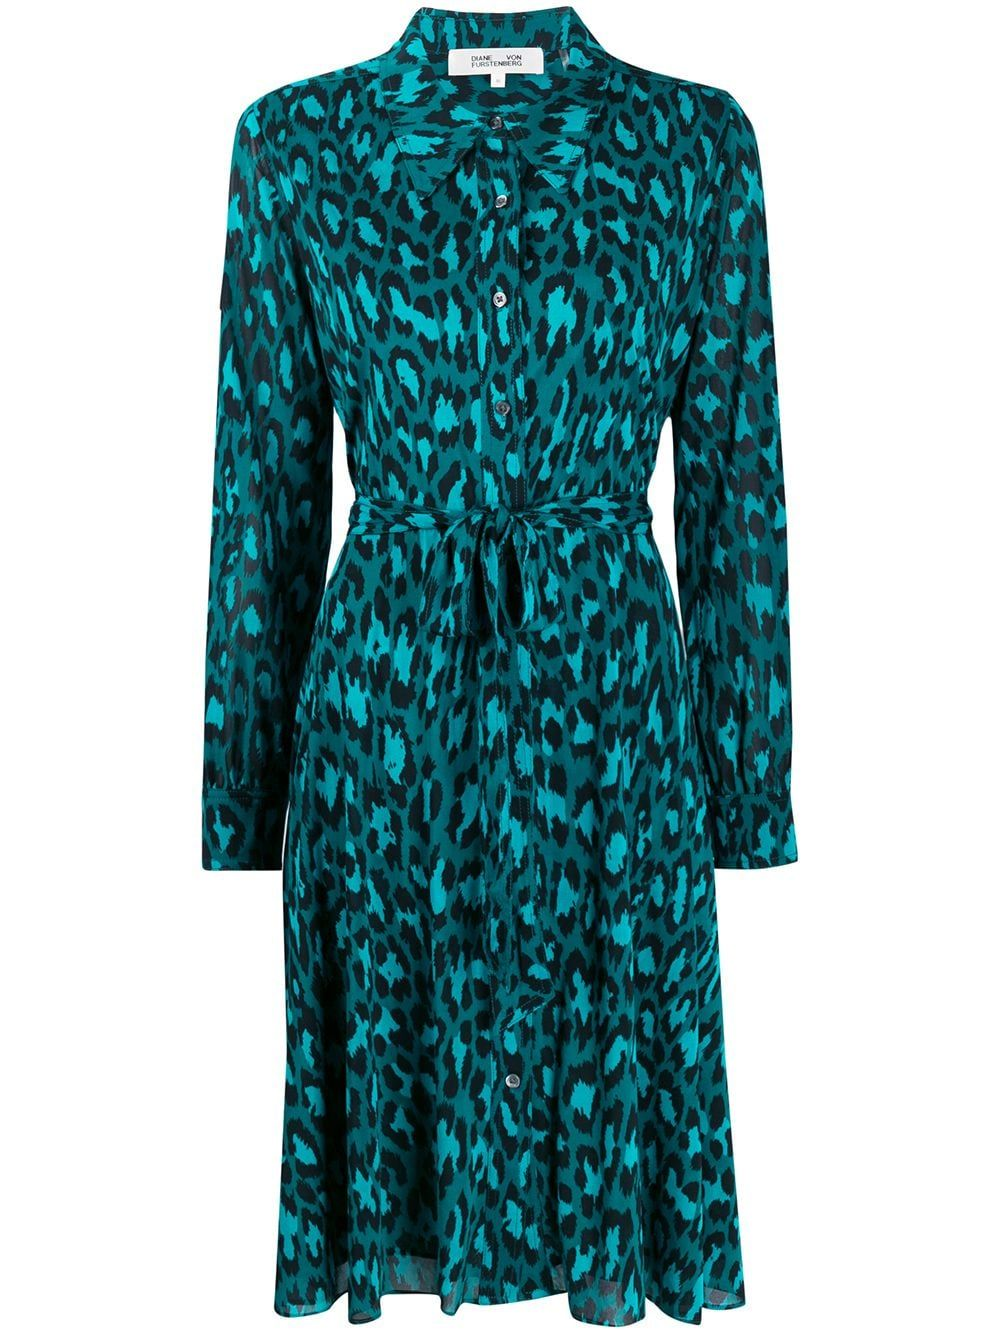 Green animal-print shirt dress from DVF Diane von Furstenberg featuring a classic collar, a front button fastening, long sleeves, a tie waist and a mid-length.